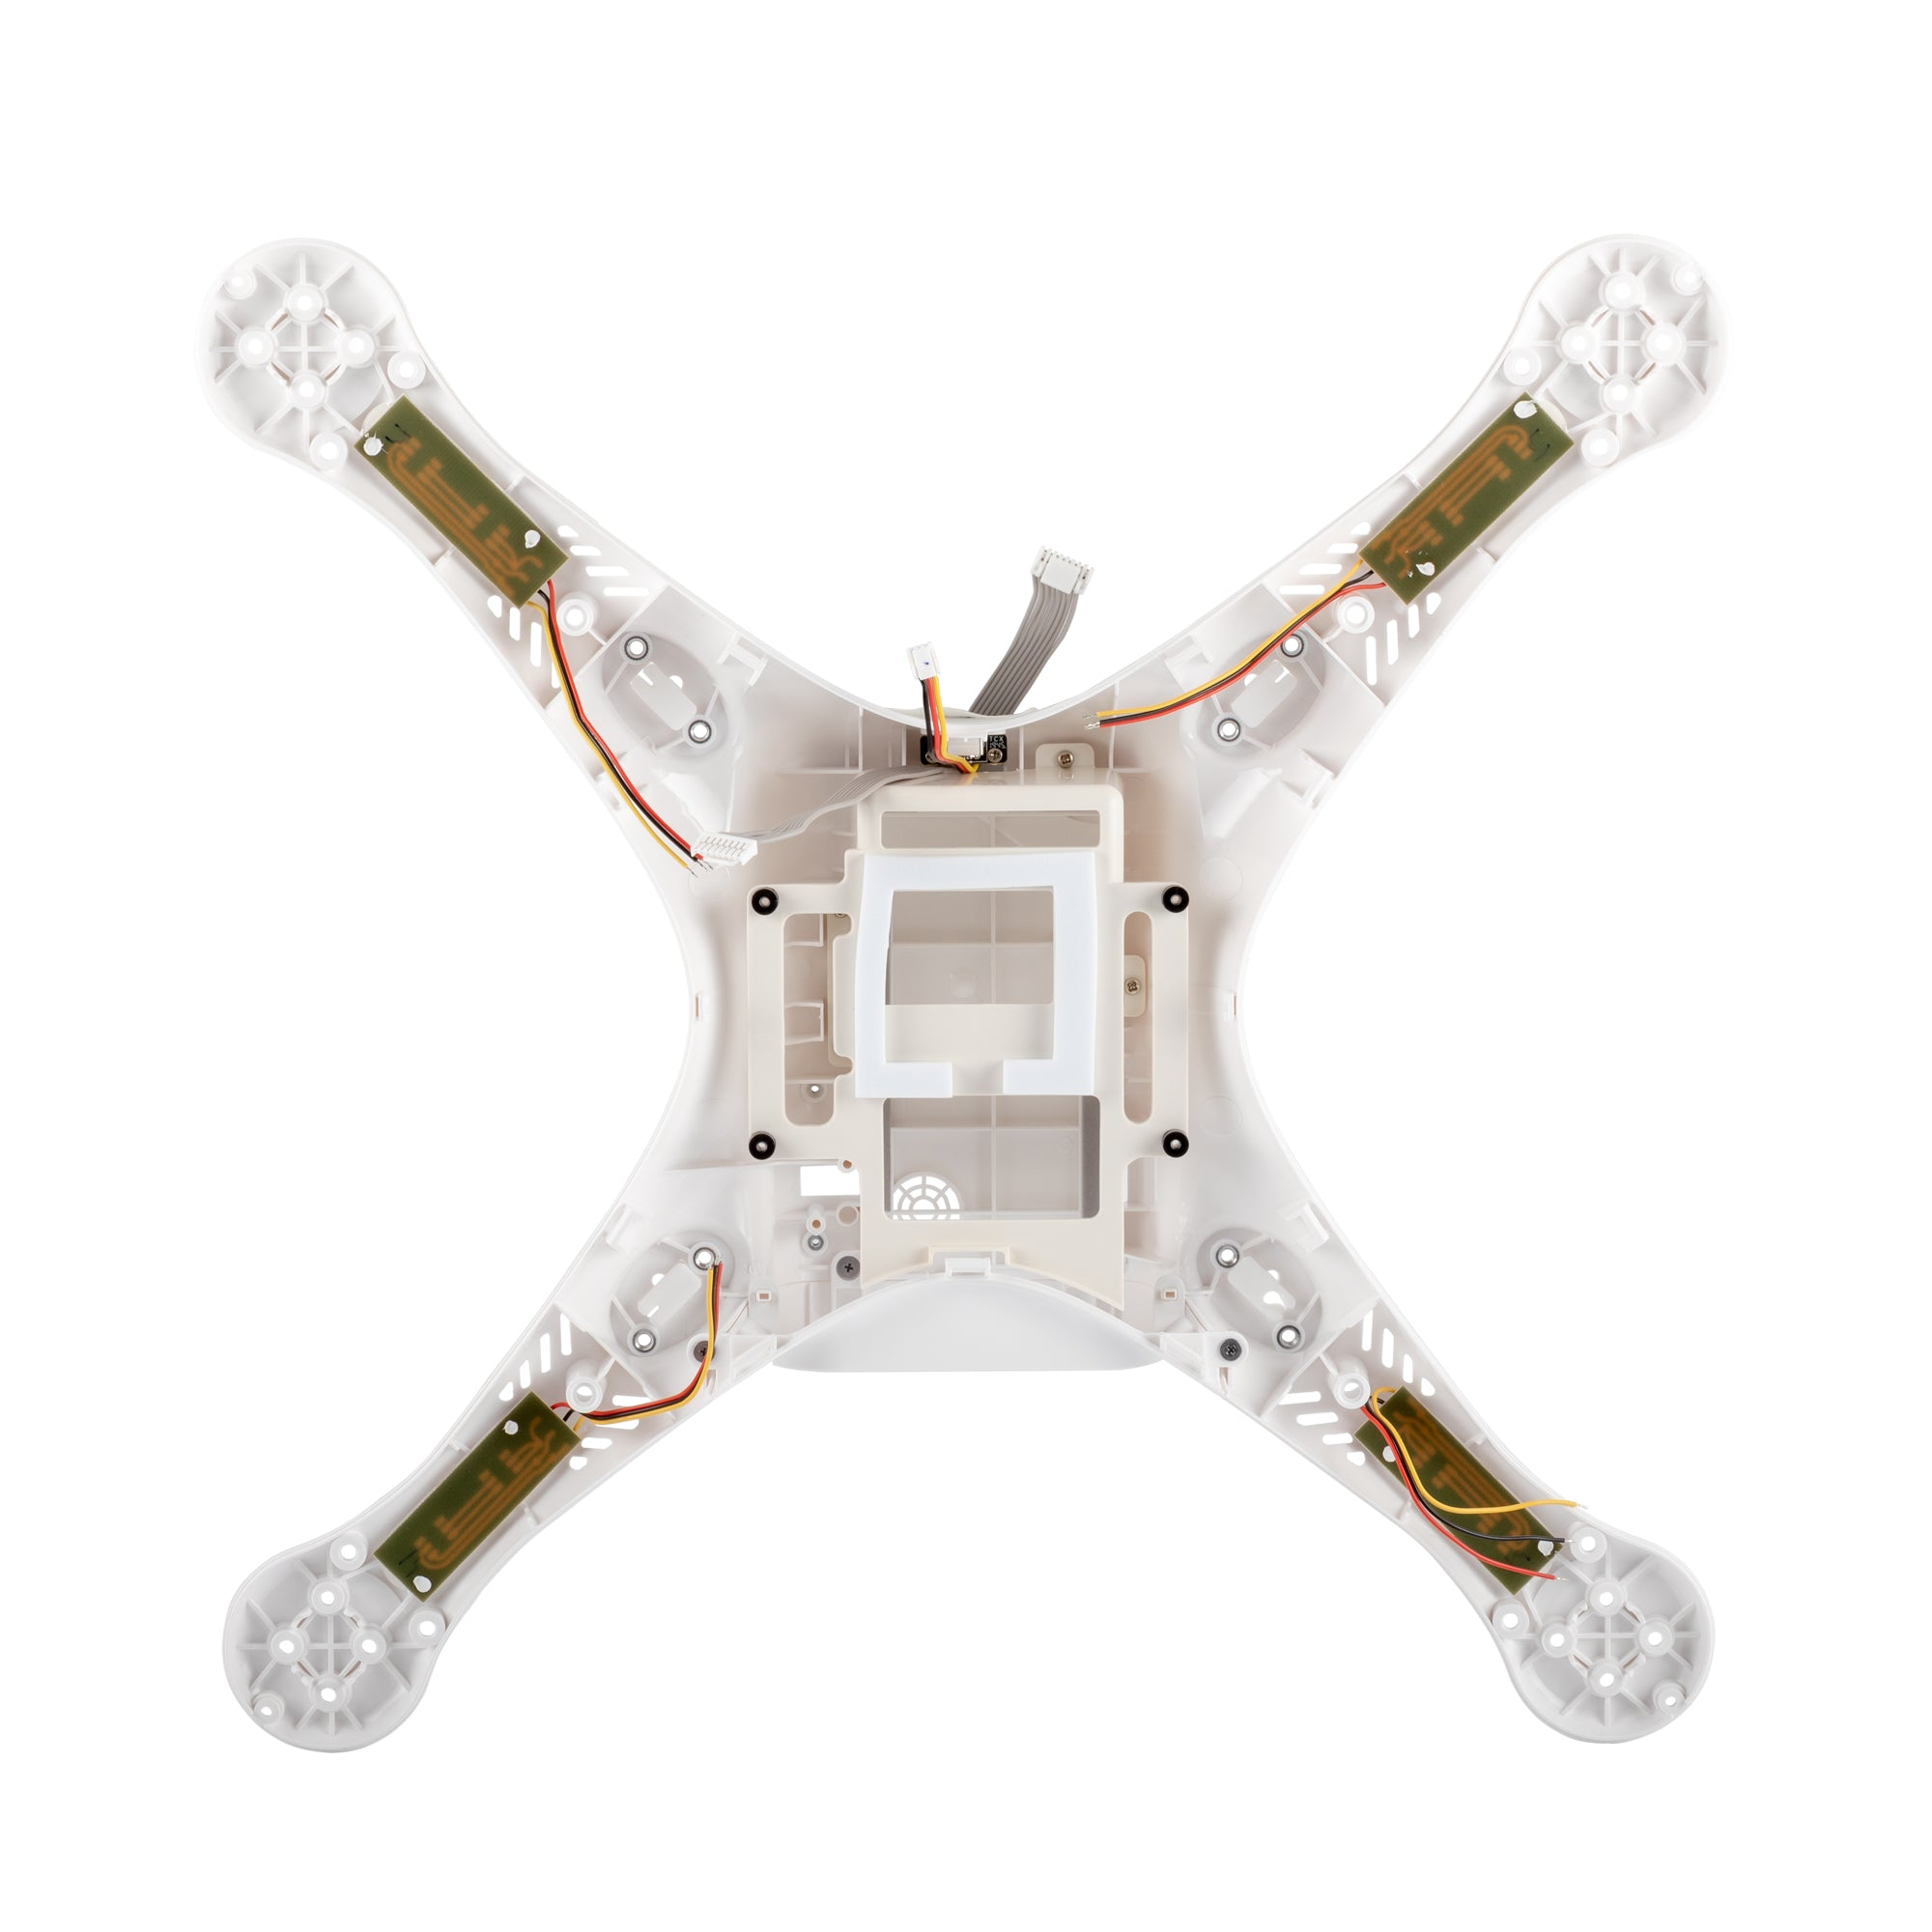 DJI Phantom 3SE Bottom Shell